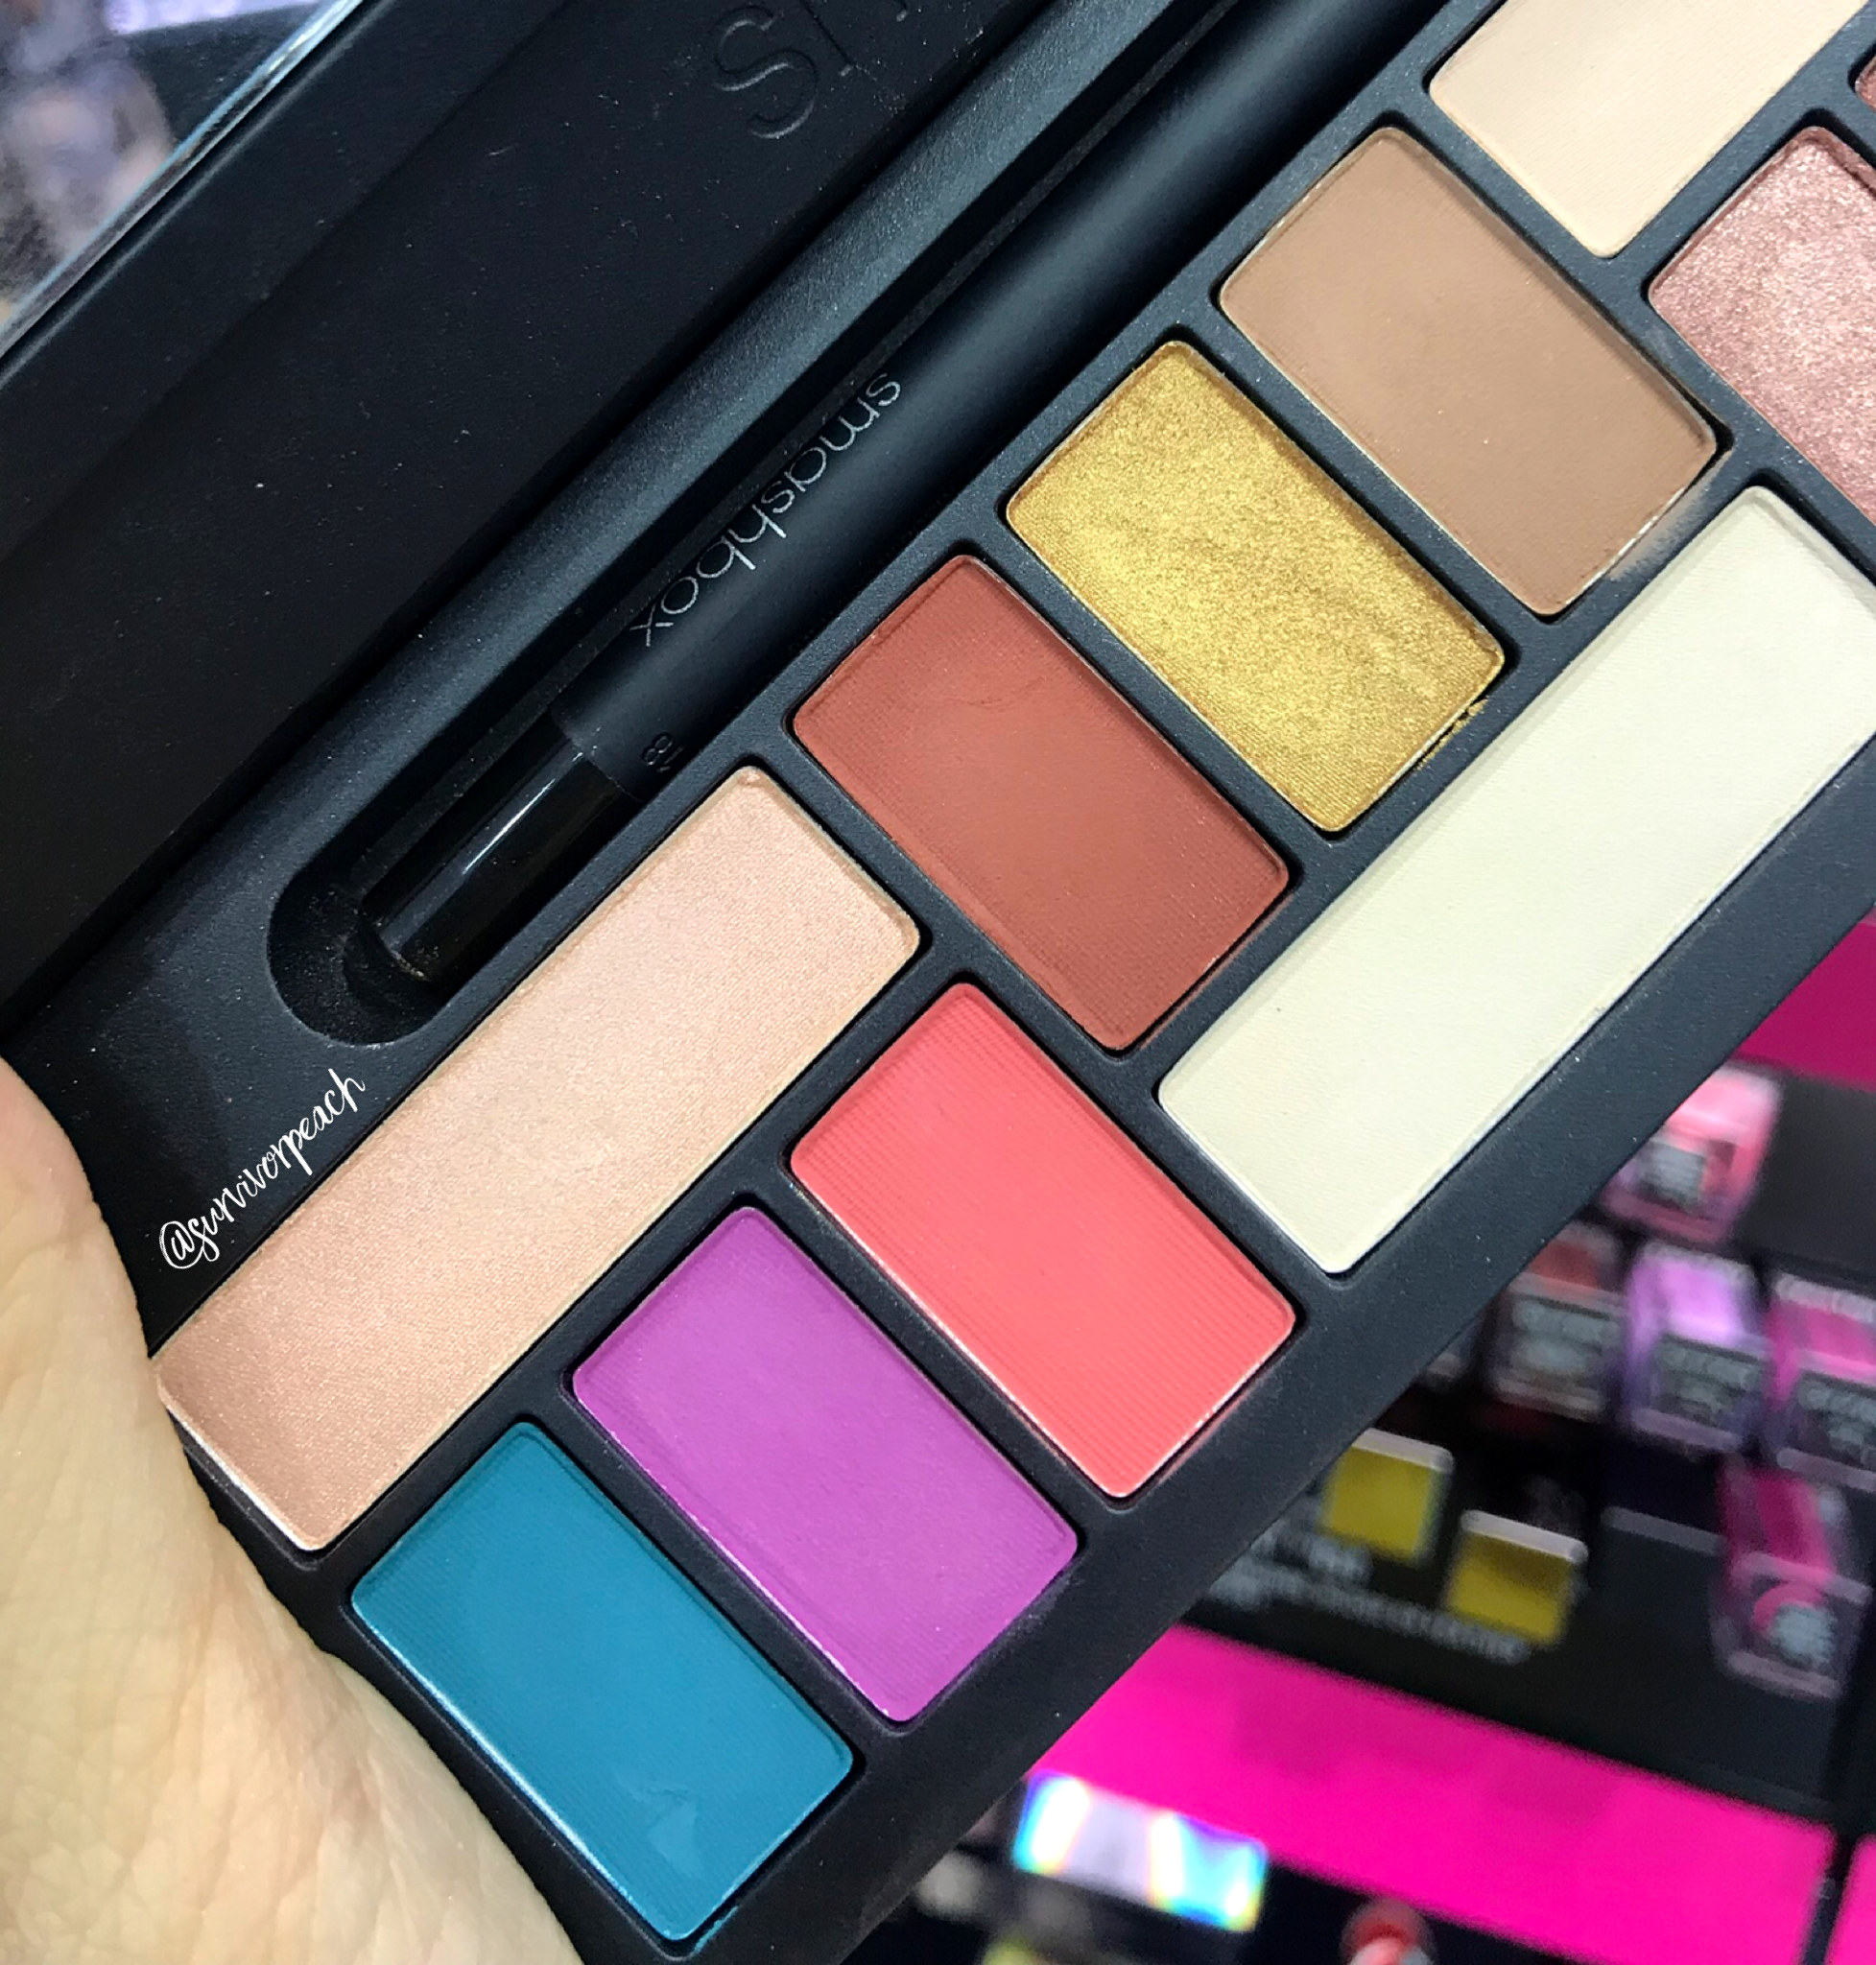 Smashbox L.A. Cover Shot Palette